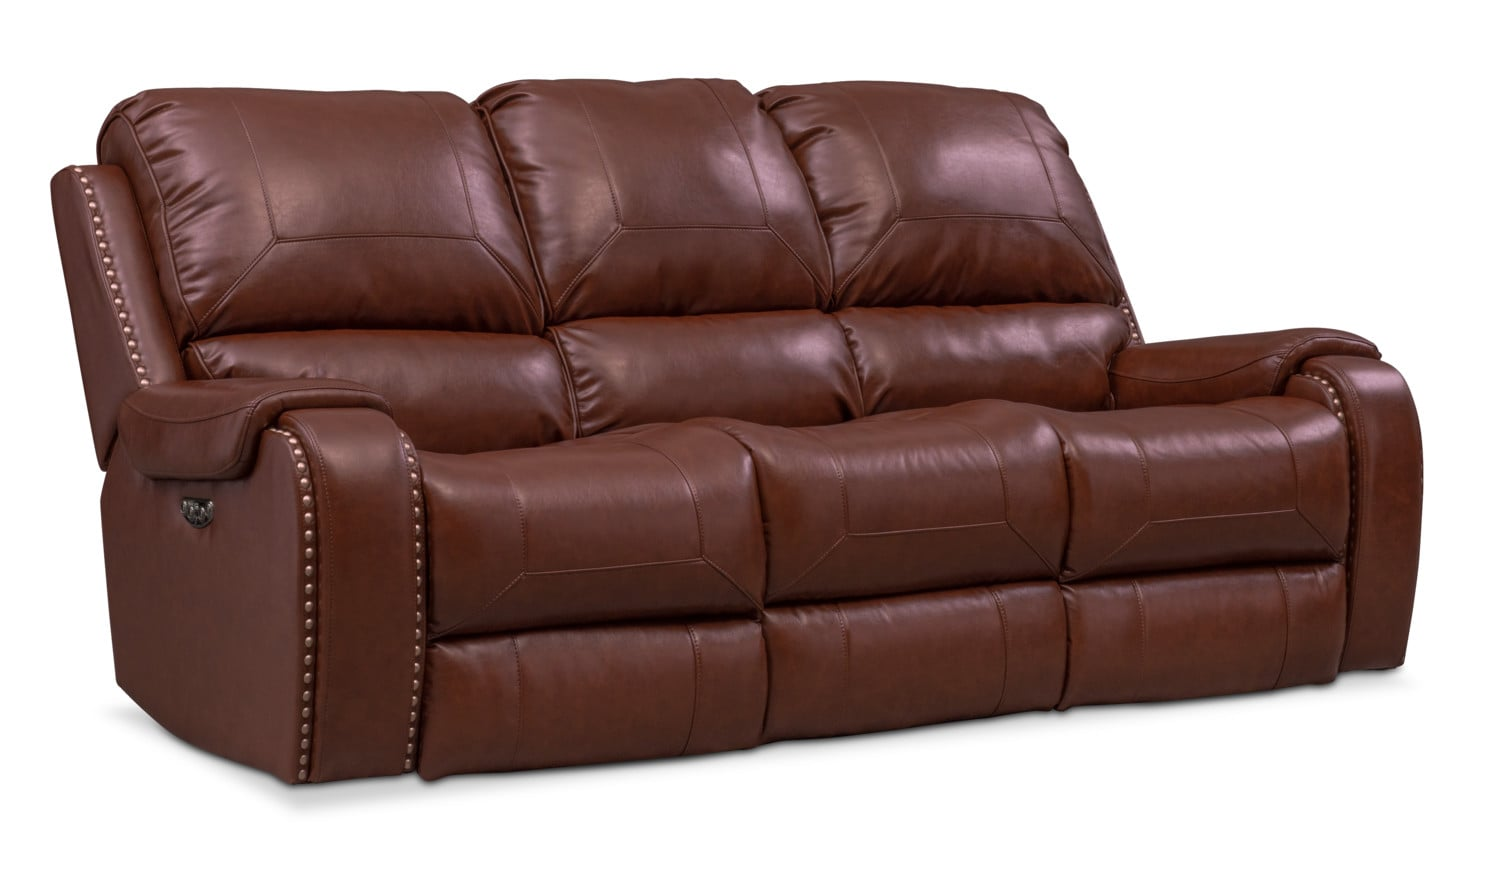 Living Room Furniture - Austin Dual-Power Reclining Sofa